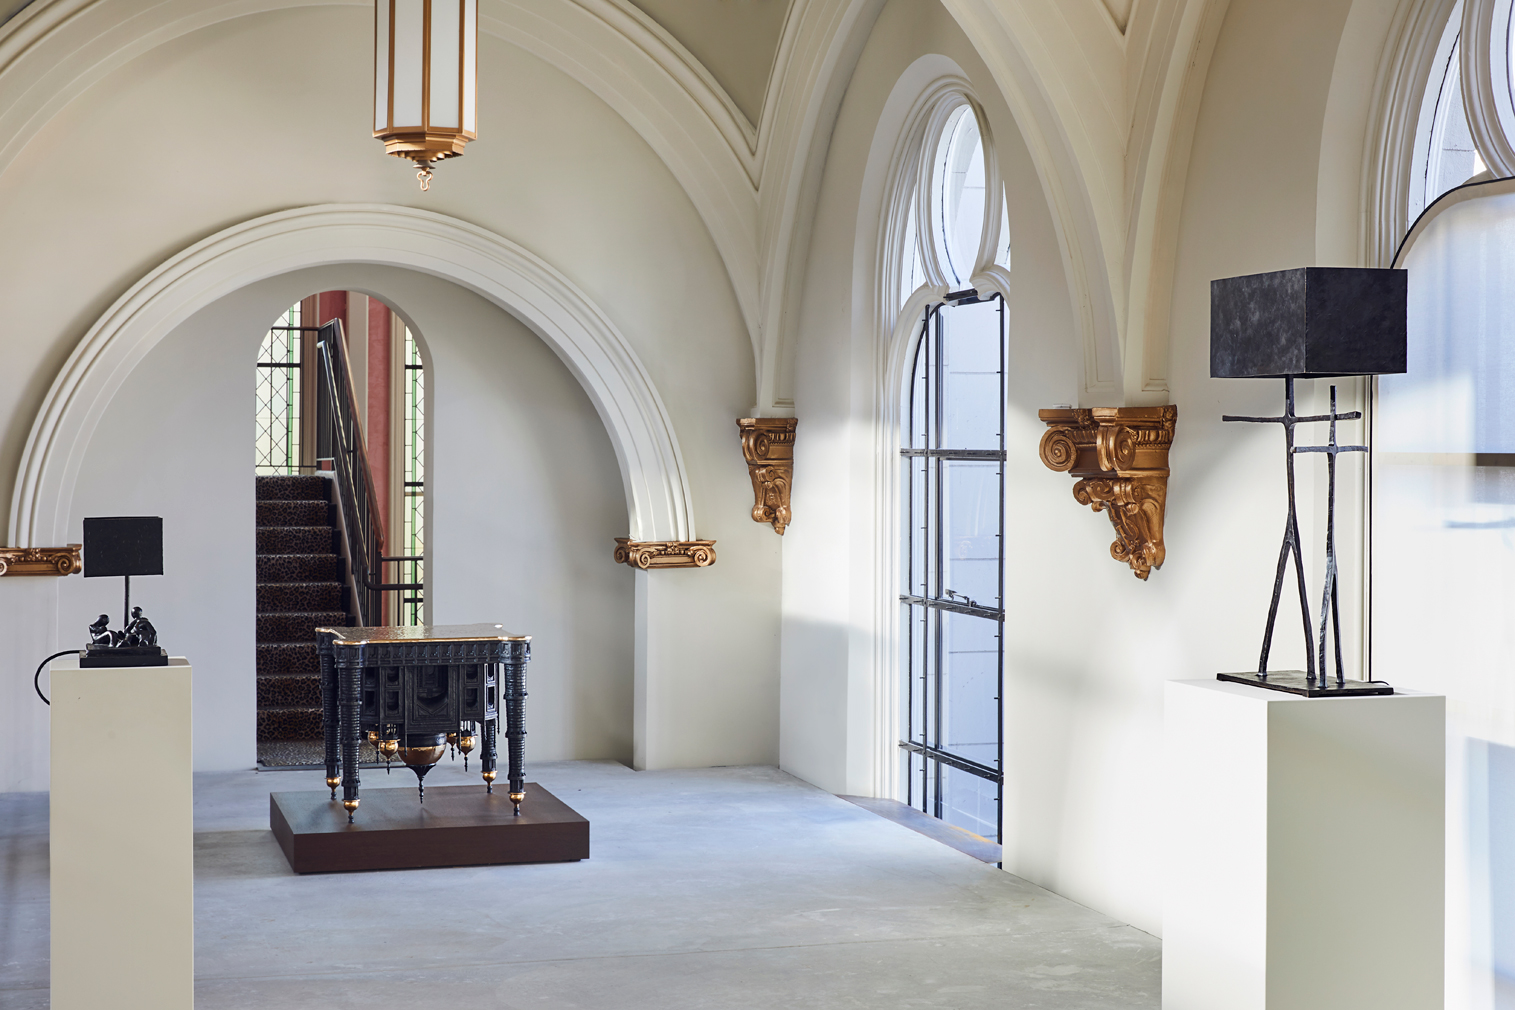 Carpenters Workshop Gallery takes up residence in a San Francisco church